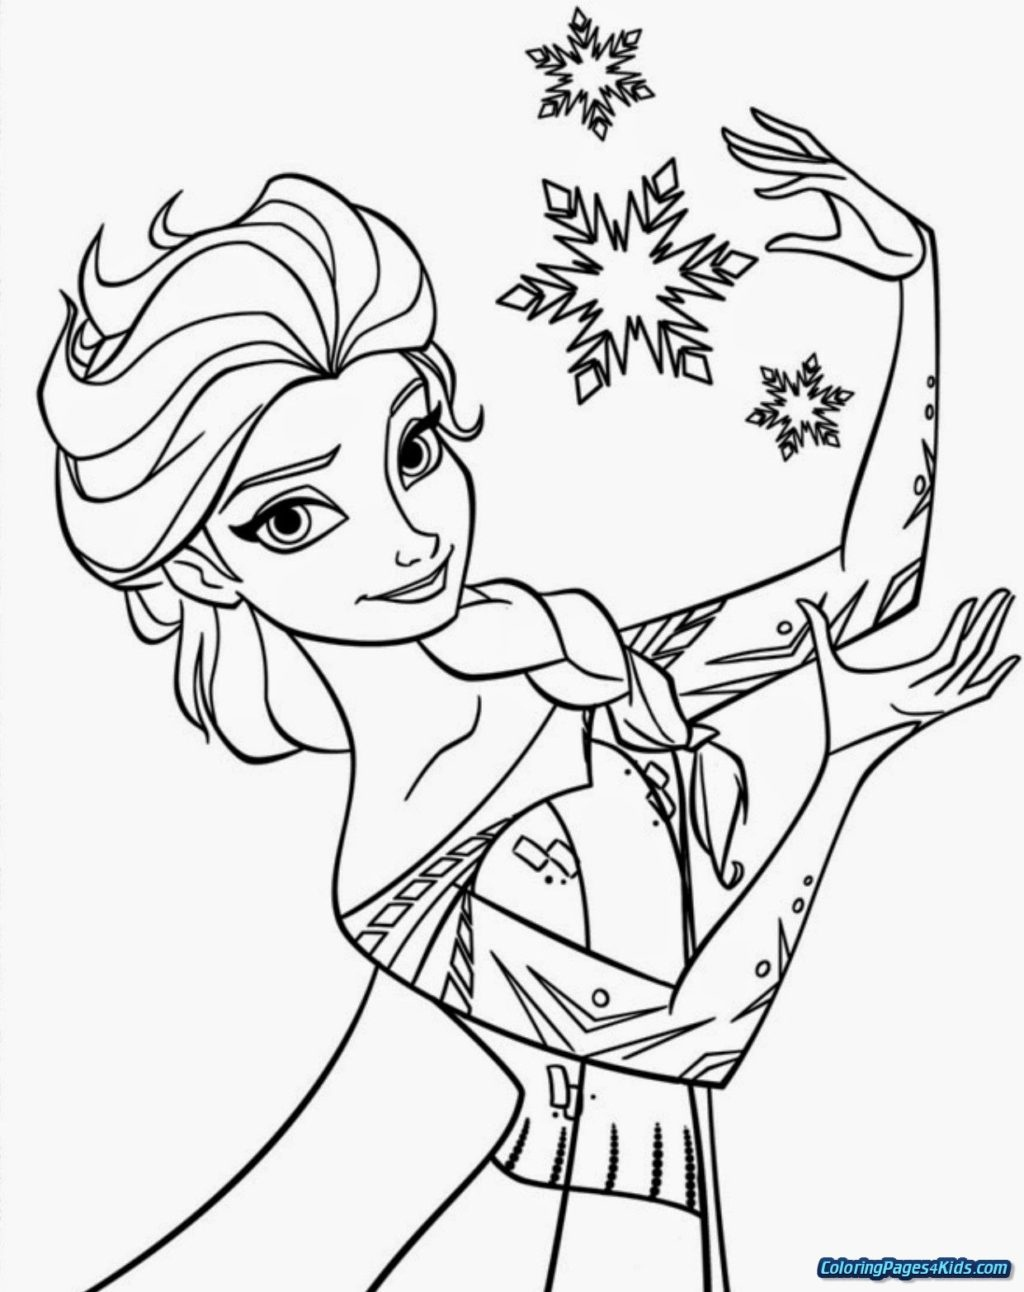 Coloring Book World ~ Disneying Pages Frozen Games Free To Print For - Free Printable Coloring Pages Disney Frozen